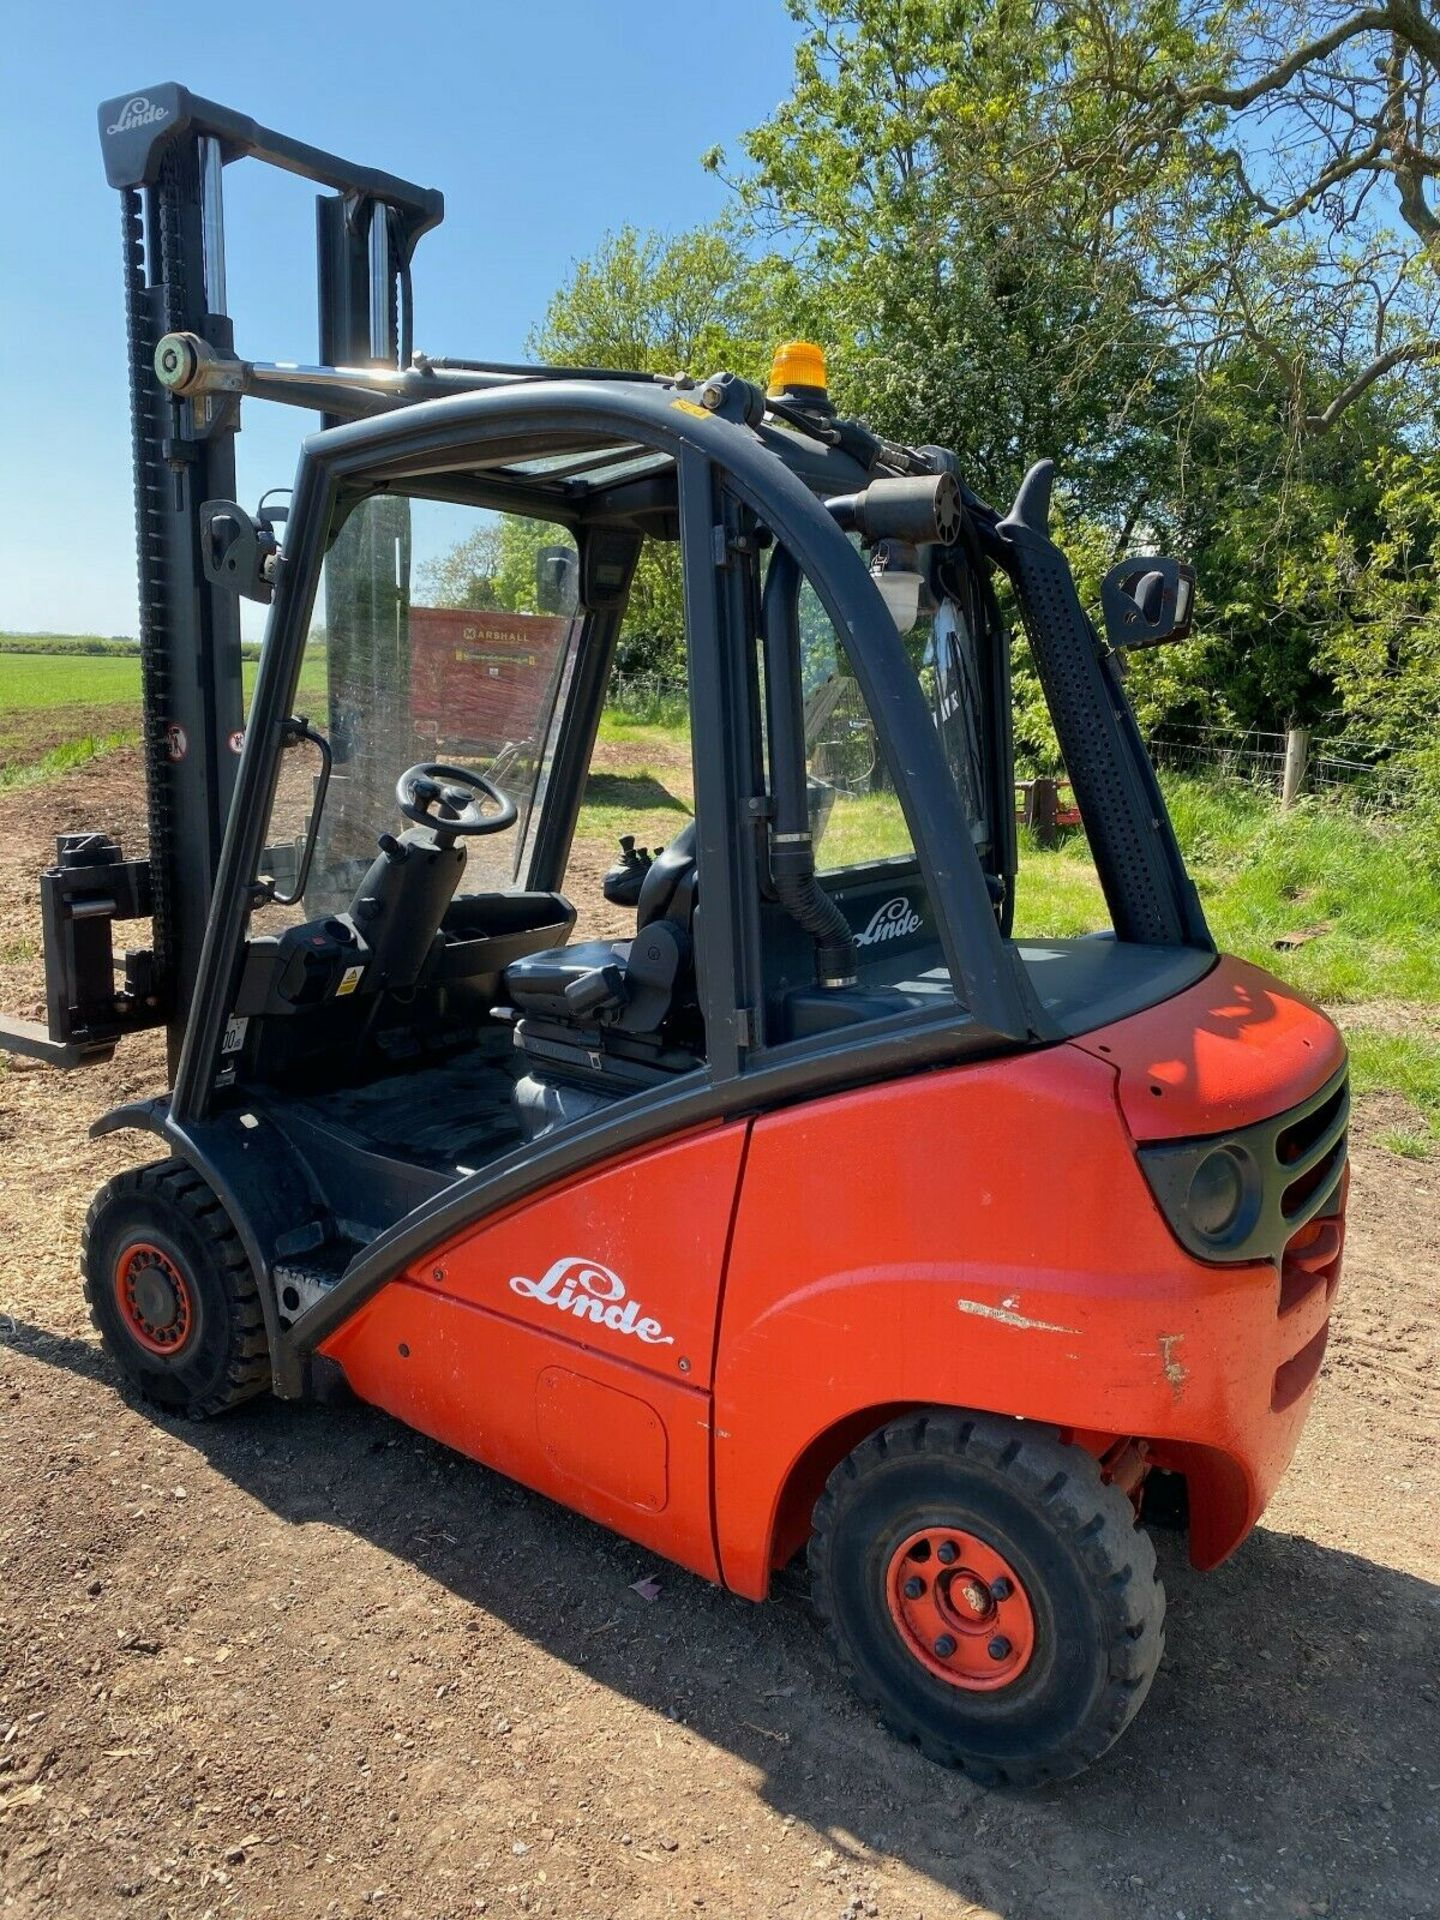 Lot 64 - LINDE 2.5 TON, MODEL: H25D, 3.7 METRE LIFT, DUPLEX, SIDE SHIFT, ONLY 600 HOURS FROM NEW, 1 OWNER